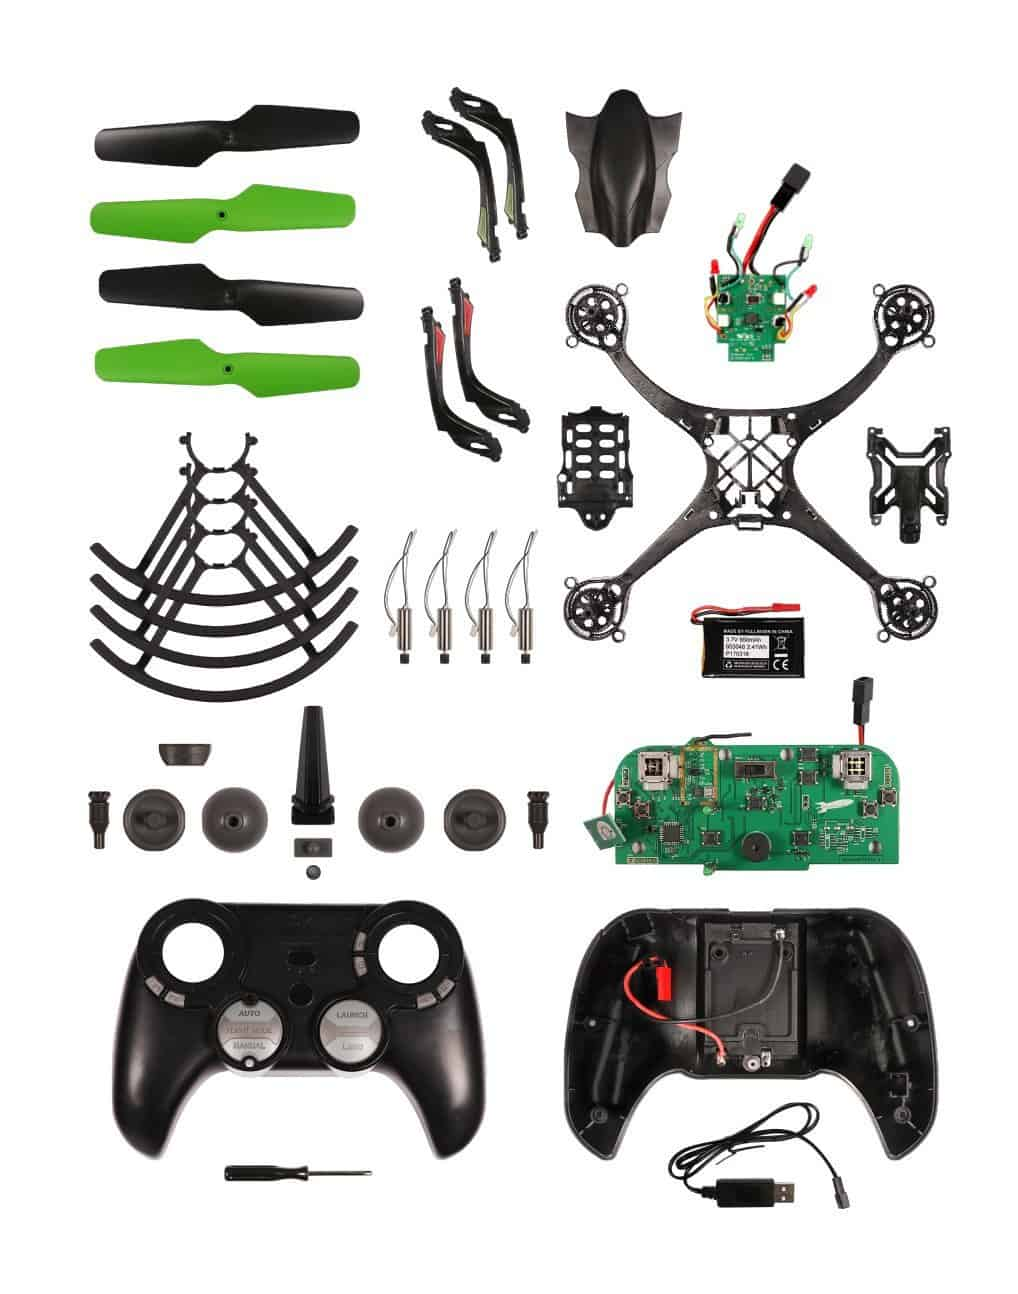 The Best DIY Drone Kits in 2018 for Kids & Adults | Build & Code Drones